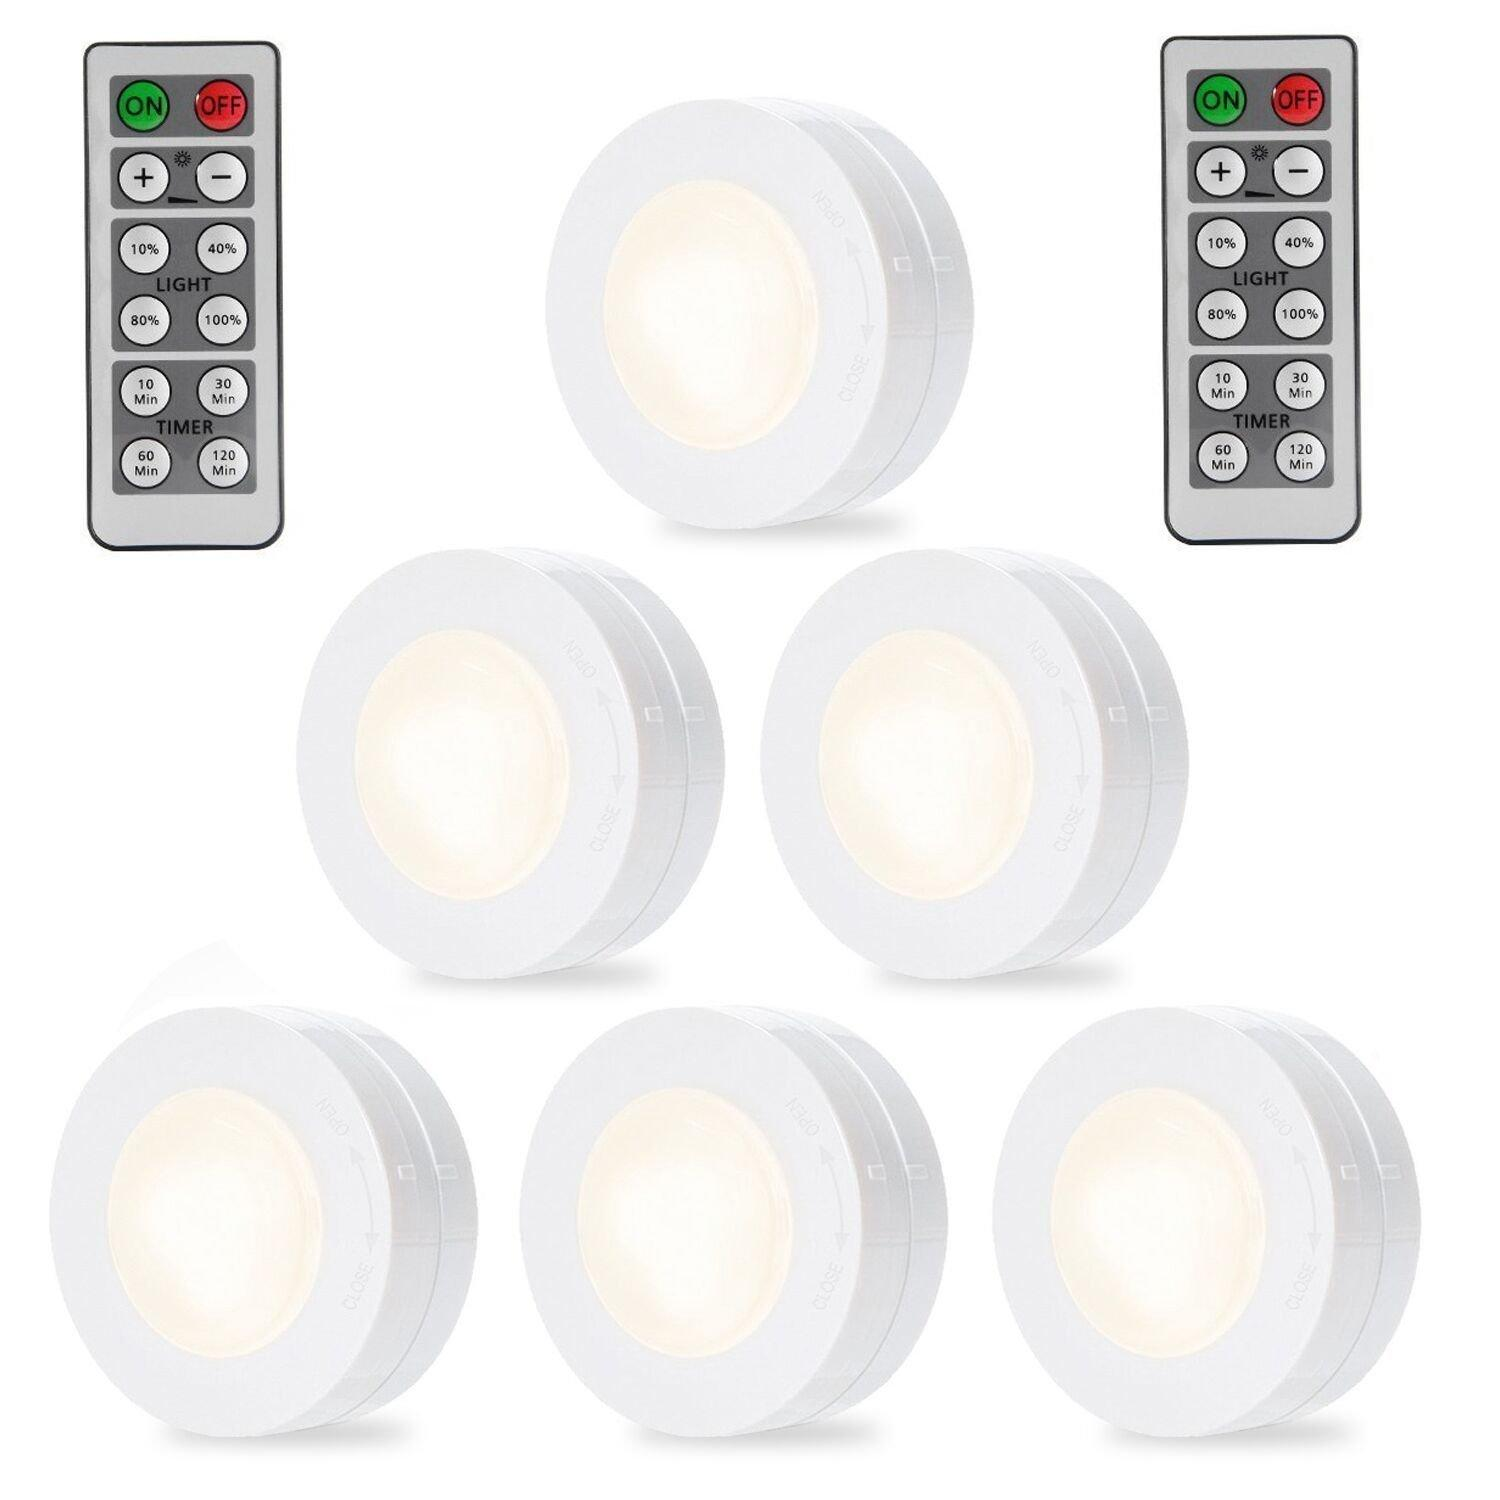 Led Lighting For Sale Lamps Prices Brands Review In Christmas Lights Circuit 555 Aquarium Sunny Shop Wireless Remote Control Closet Kitchen Under Cabinet 4000k Natural White